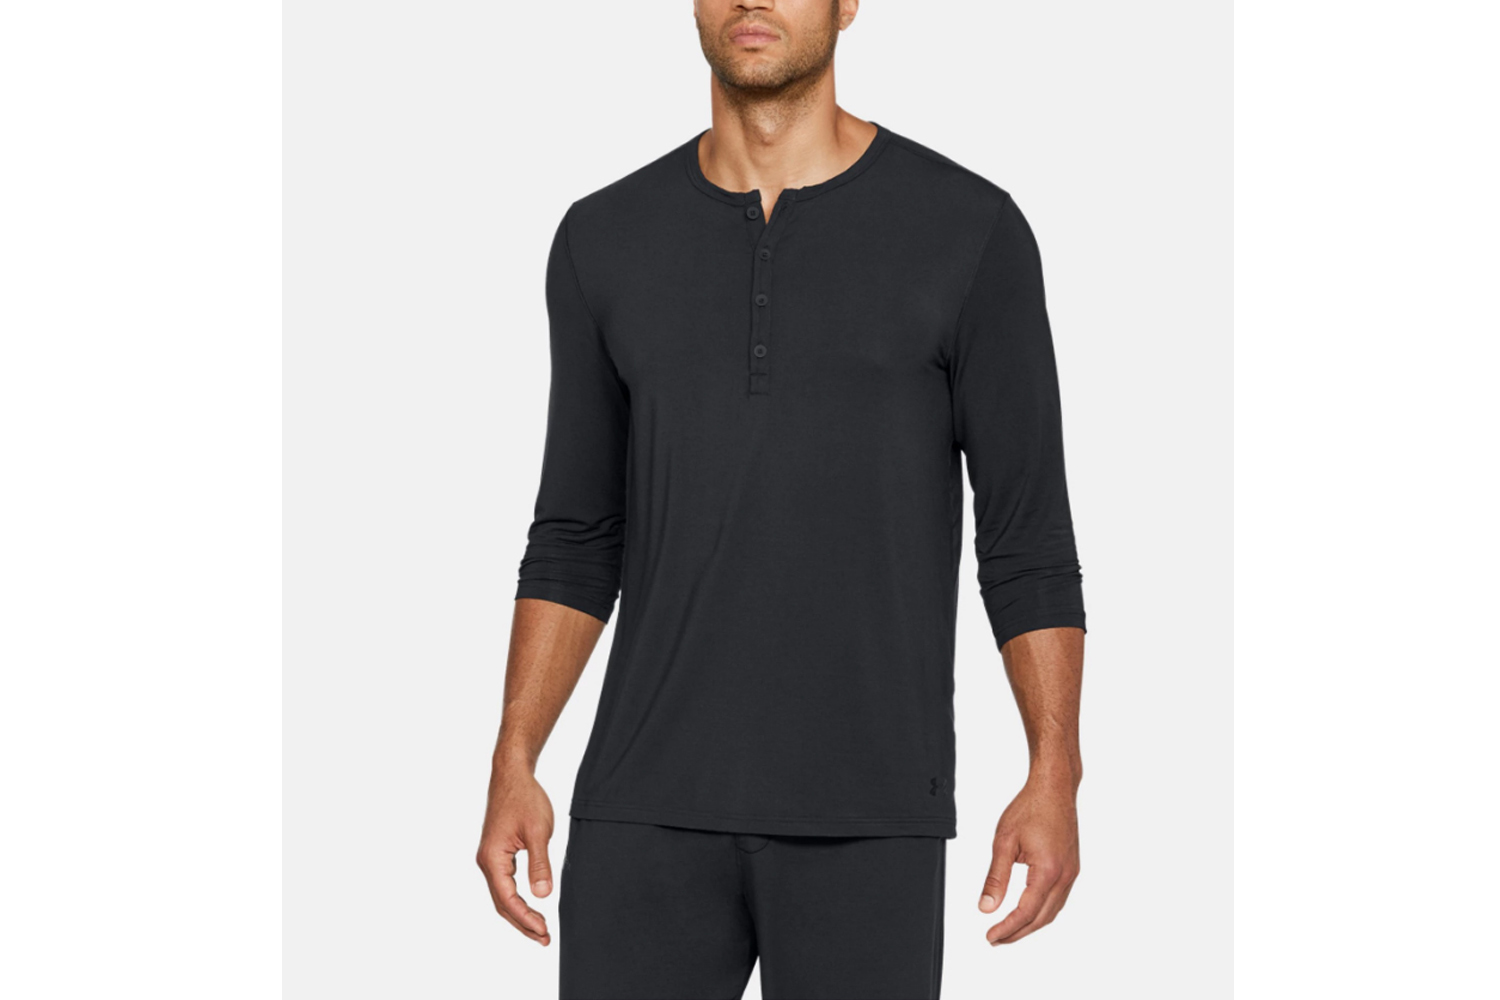 Under Armour Athlete Recovery Ultra Comfort Sleepwear Henley, £60